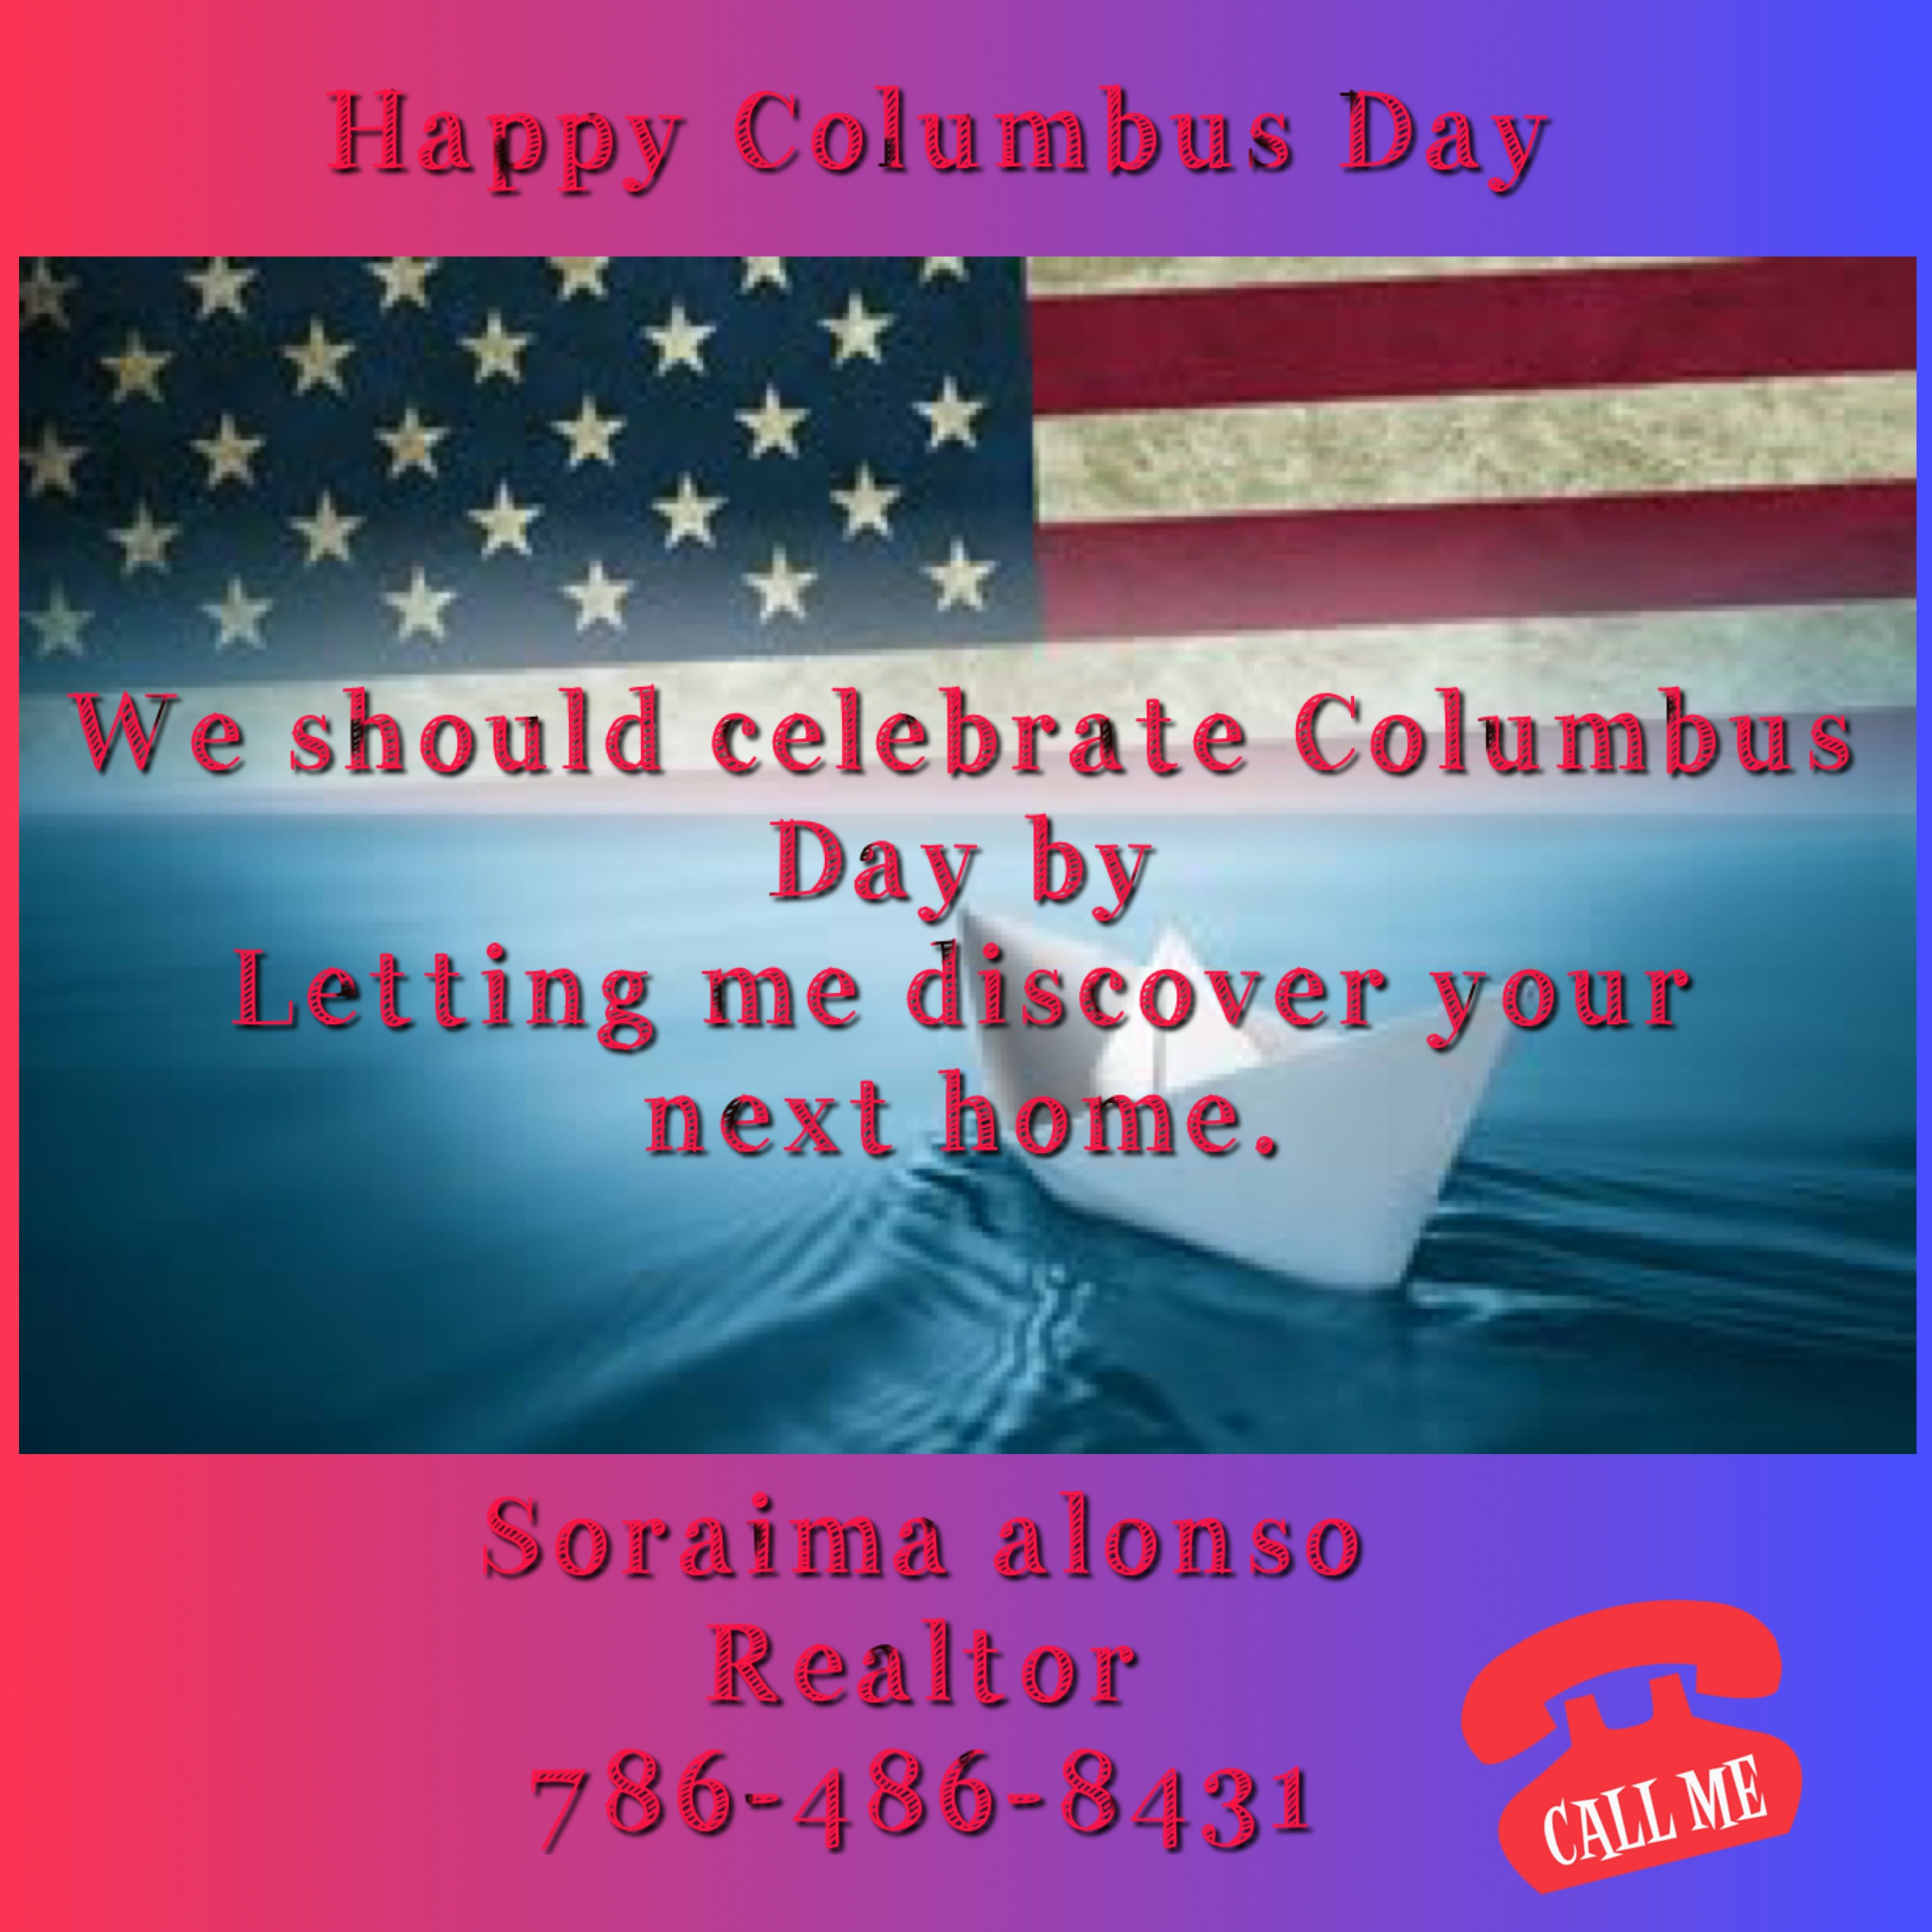 Good Morning On Columbus Day I Wish That You Discover Many Things That Are Brighter And More Beautiful Happy Columbus Day I Love My Friends Miami Real Estate